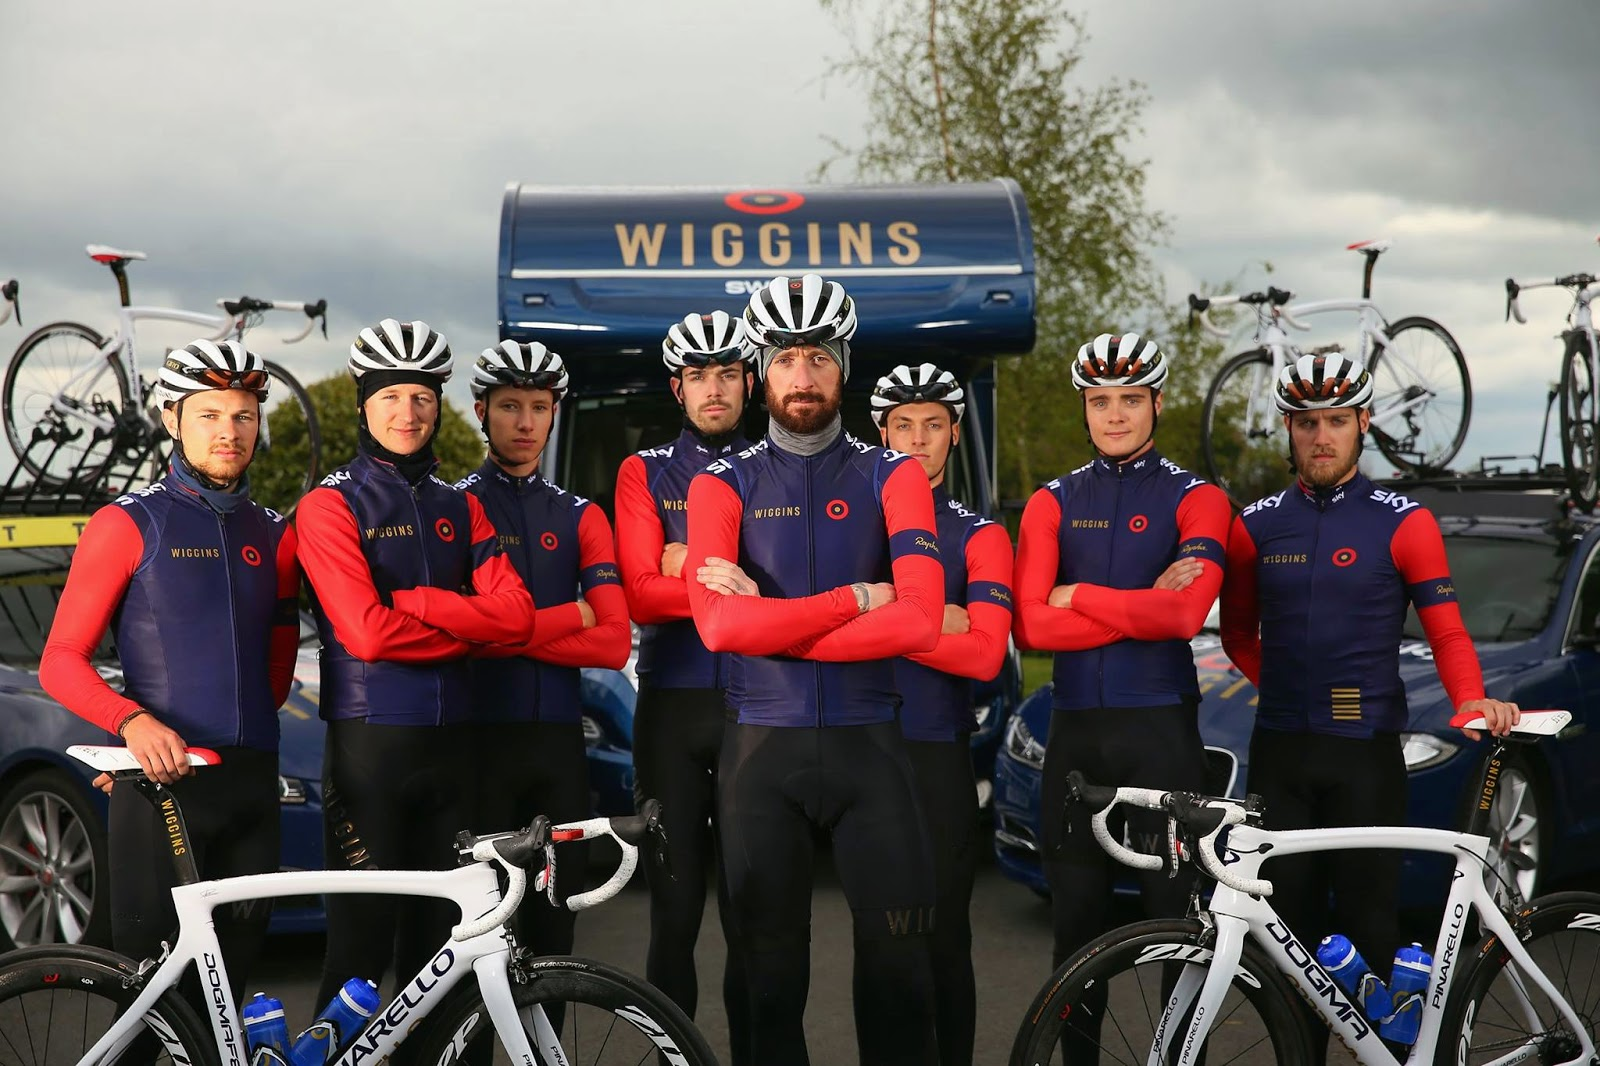 http://www.swiftgroup.co.uk/swift-group/swift-experience/team-wiggins